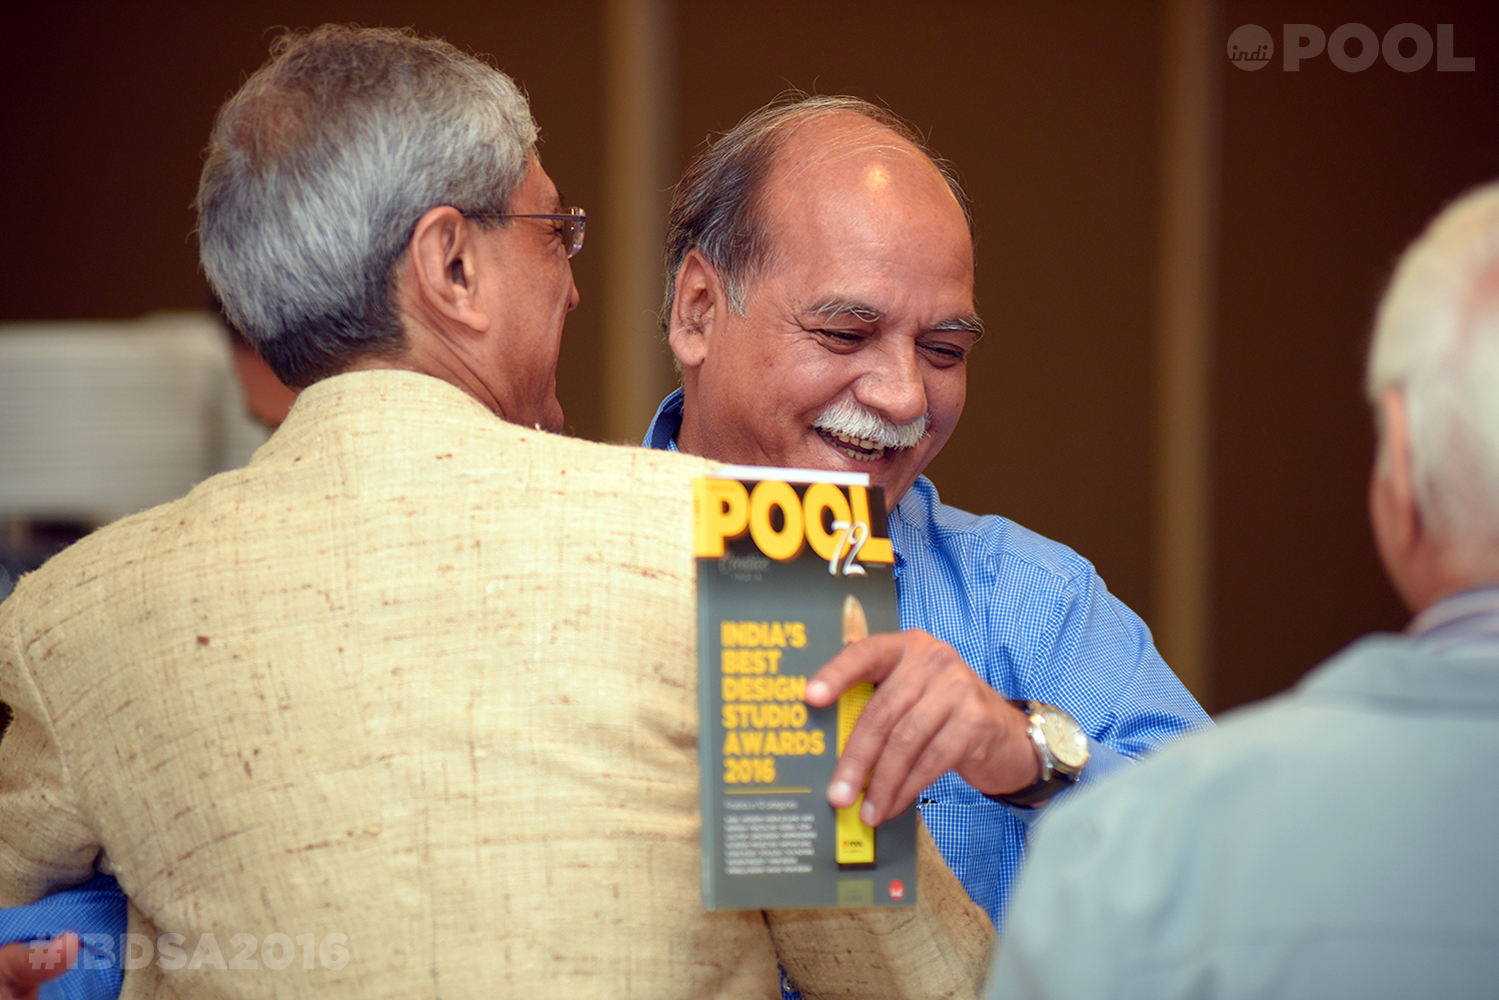 Mookesh Patel and Anil Sinha